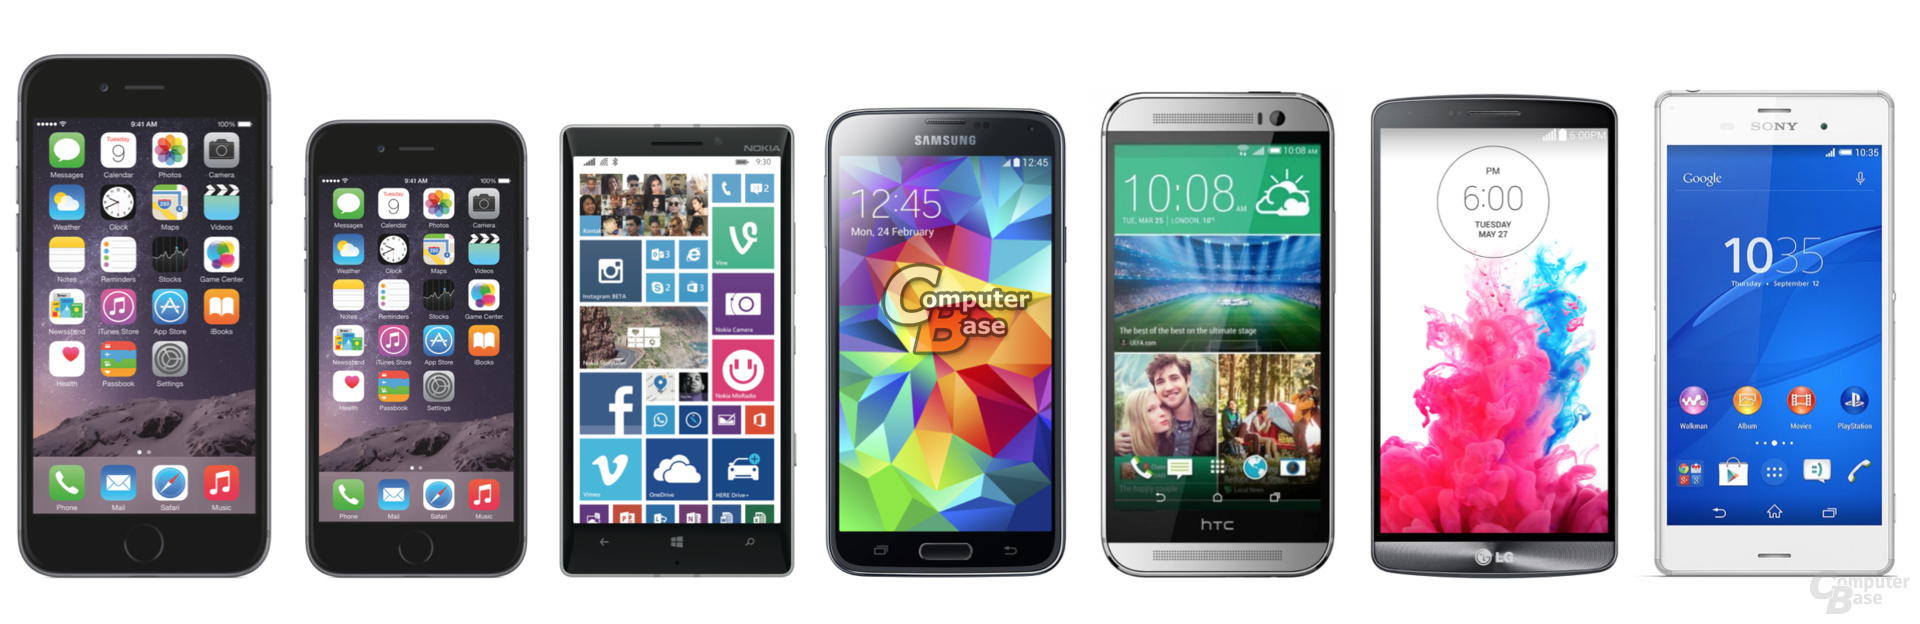 v.l.n.r.: iPhone 6 (Plus), Lumia 930, Galaxy S5, HTC One (M8), G3, Xperia Z3